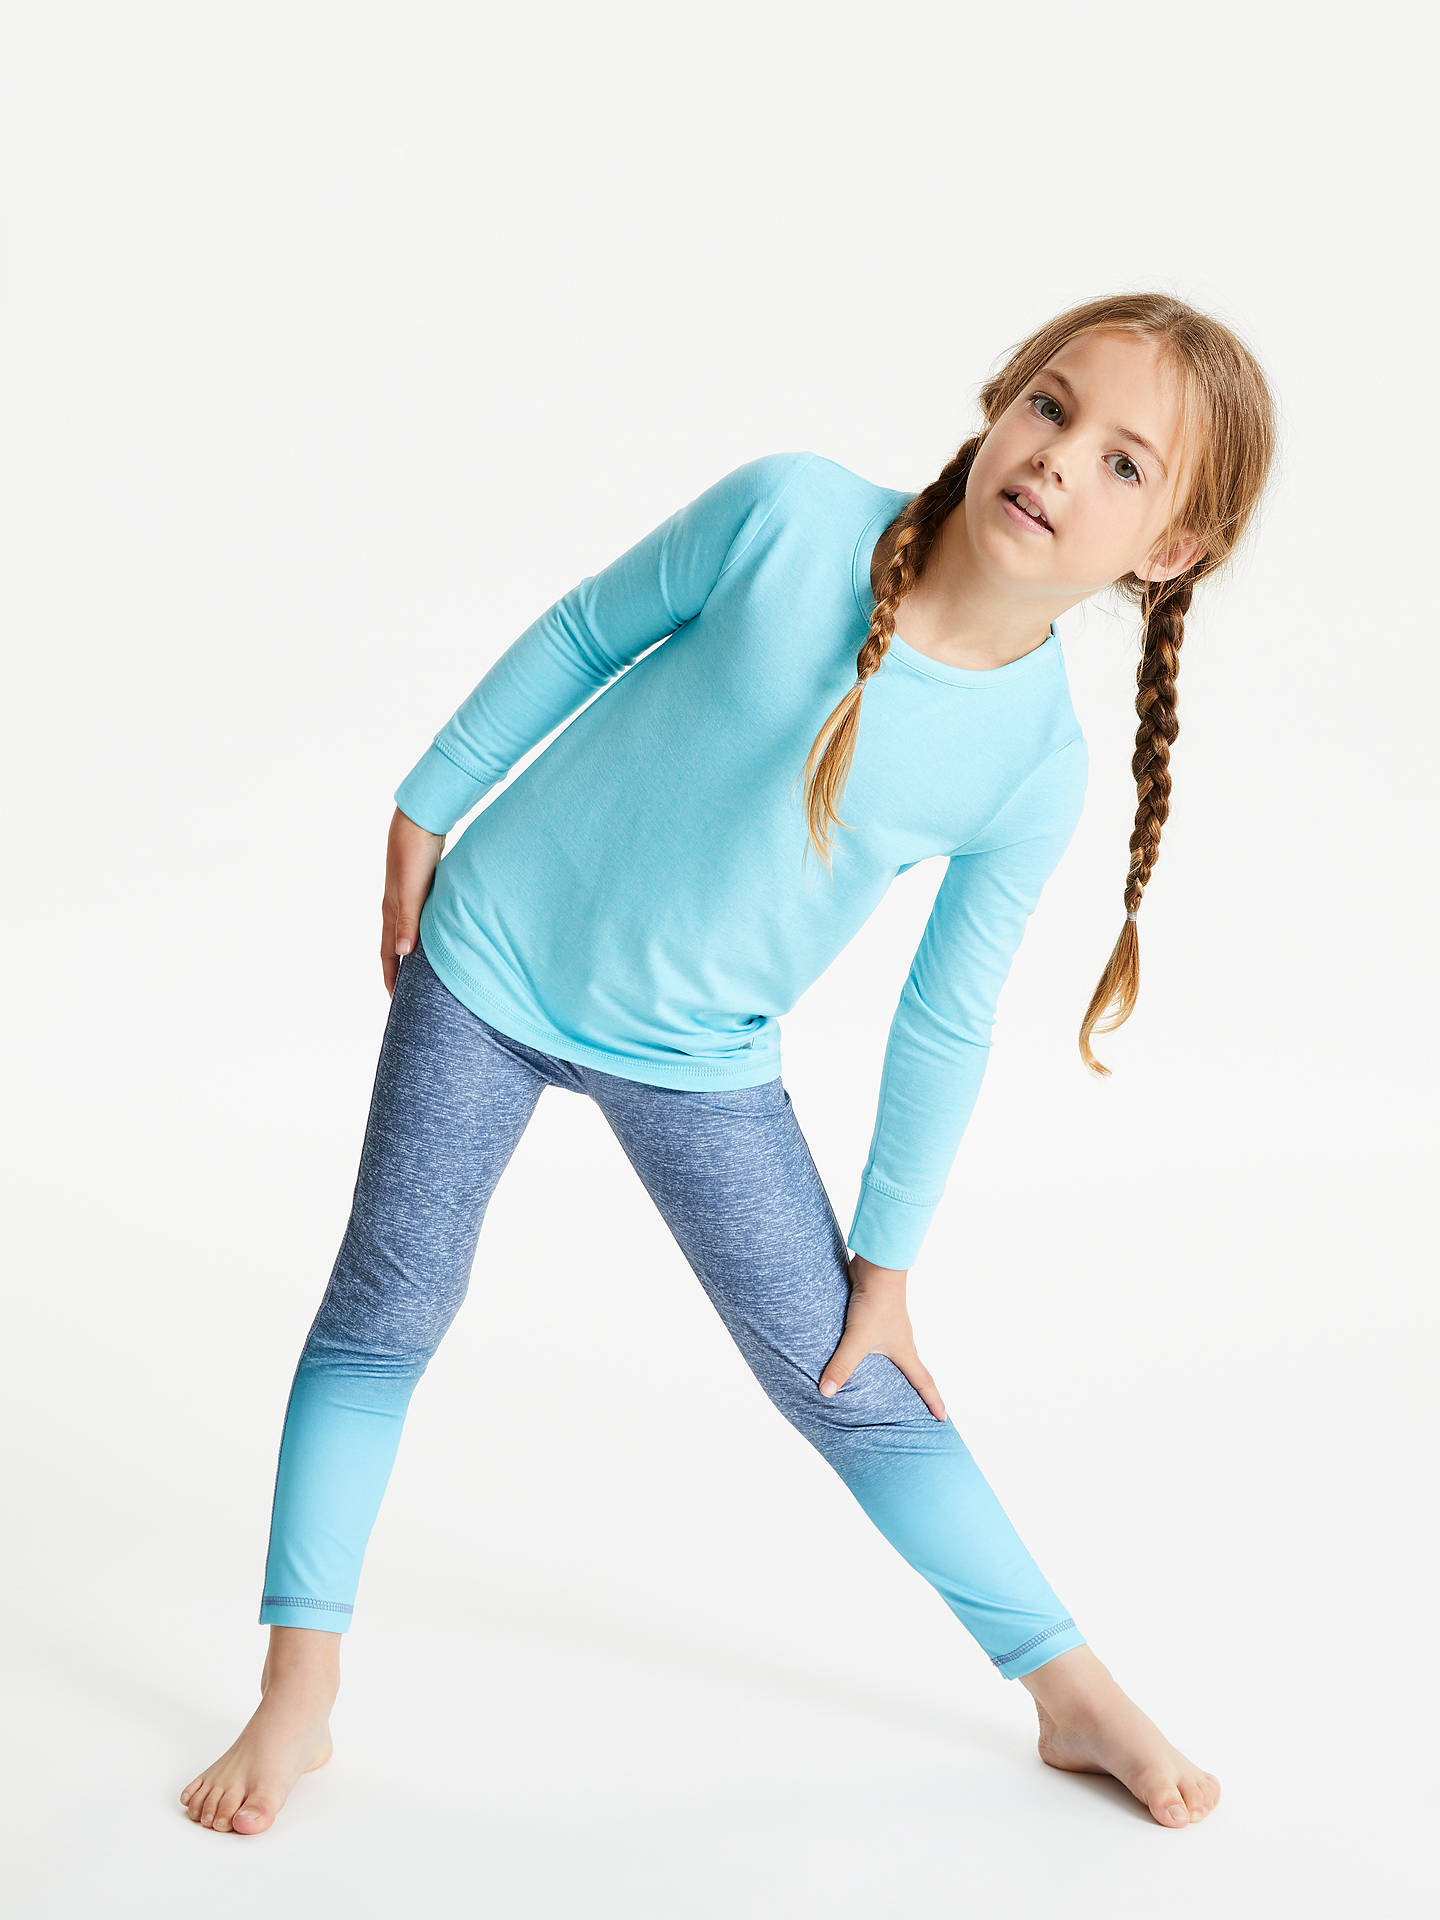 Buy John Lewis & Partners Girls' Athleisure Top, Turquoise, 3 years Online at johnlewis.com